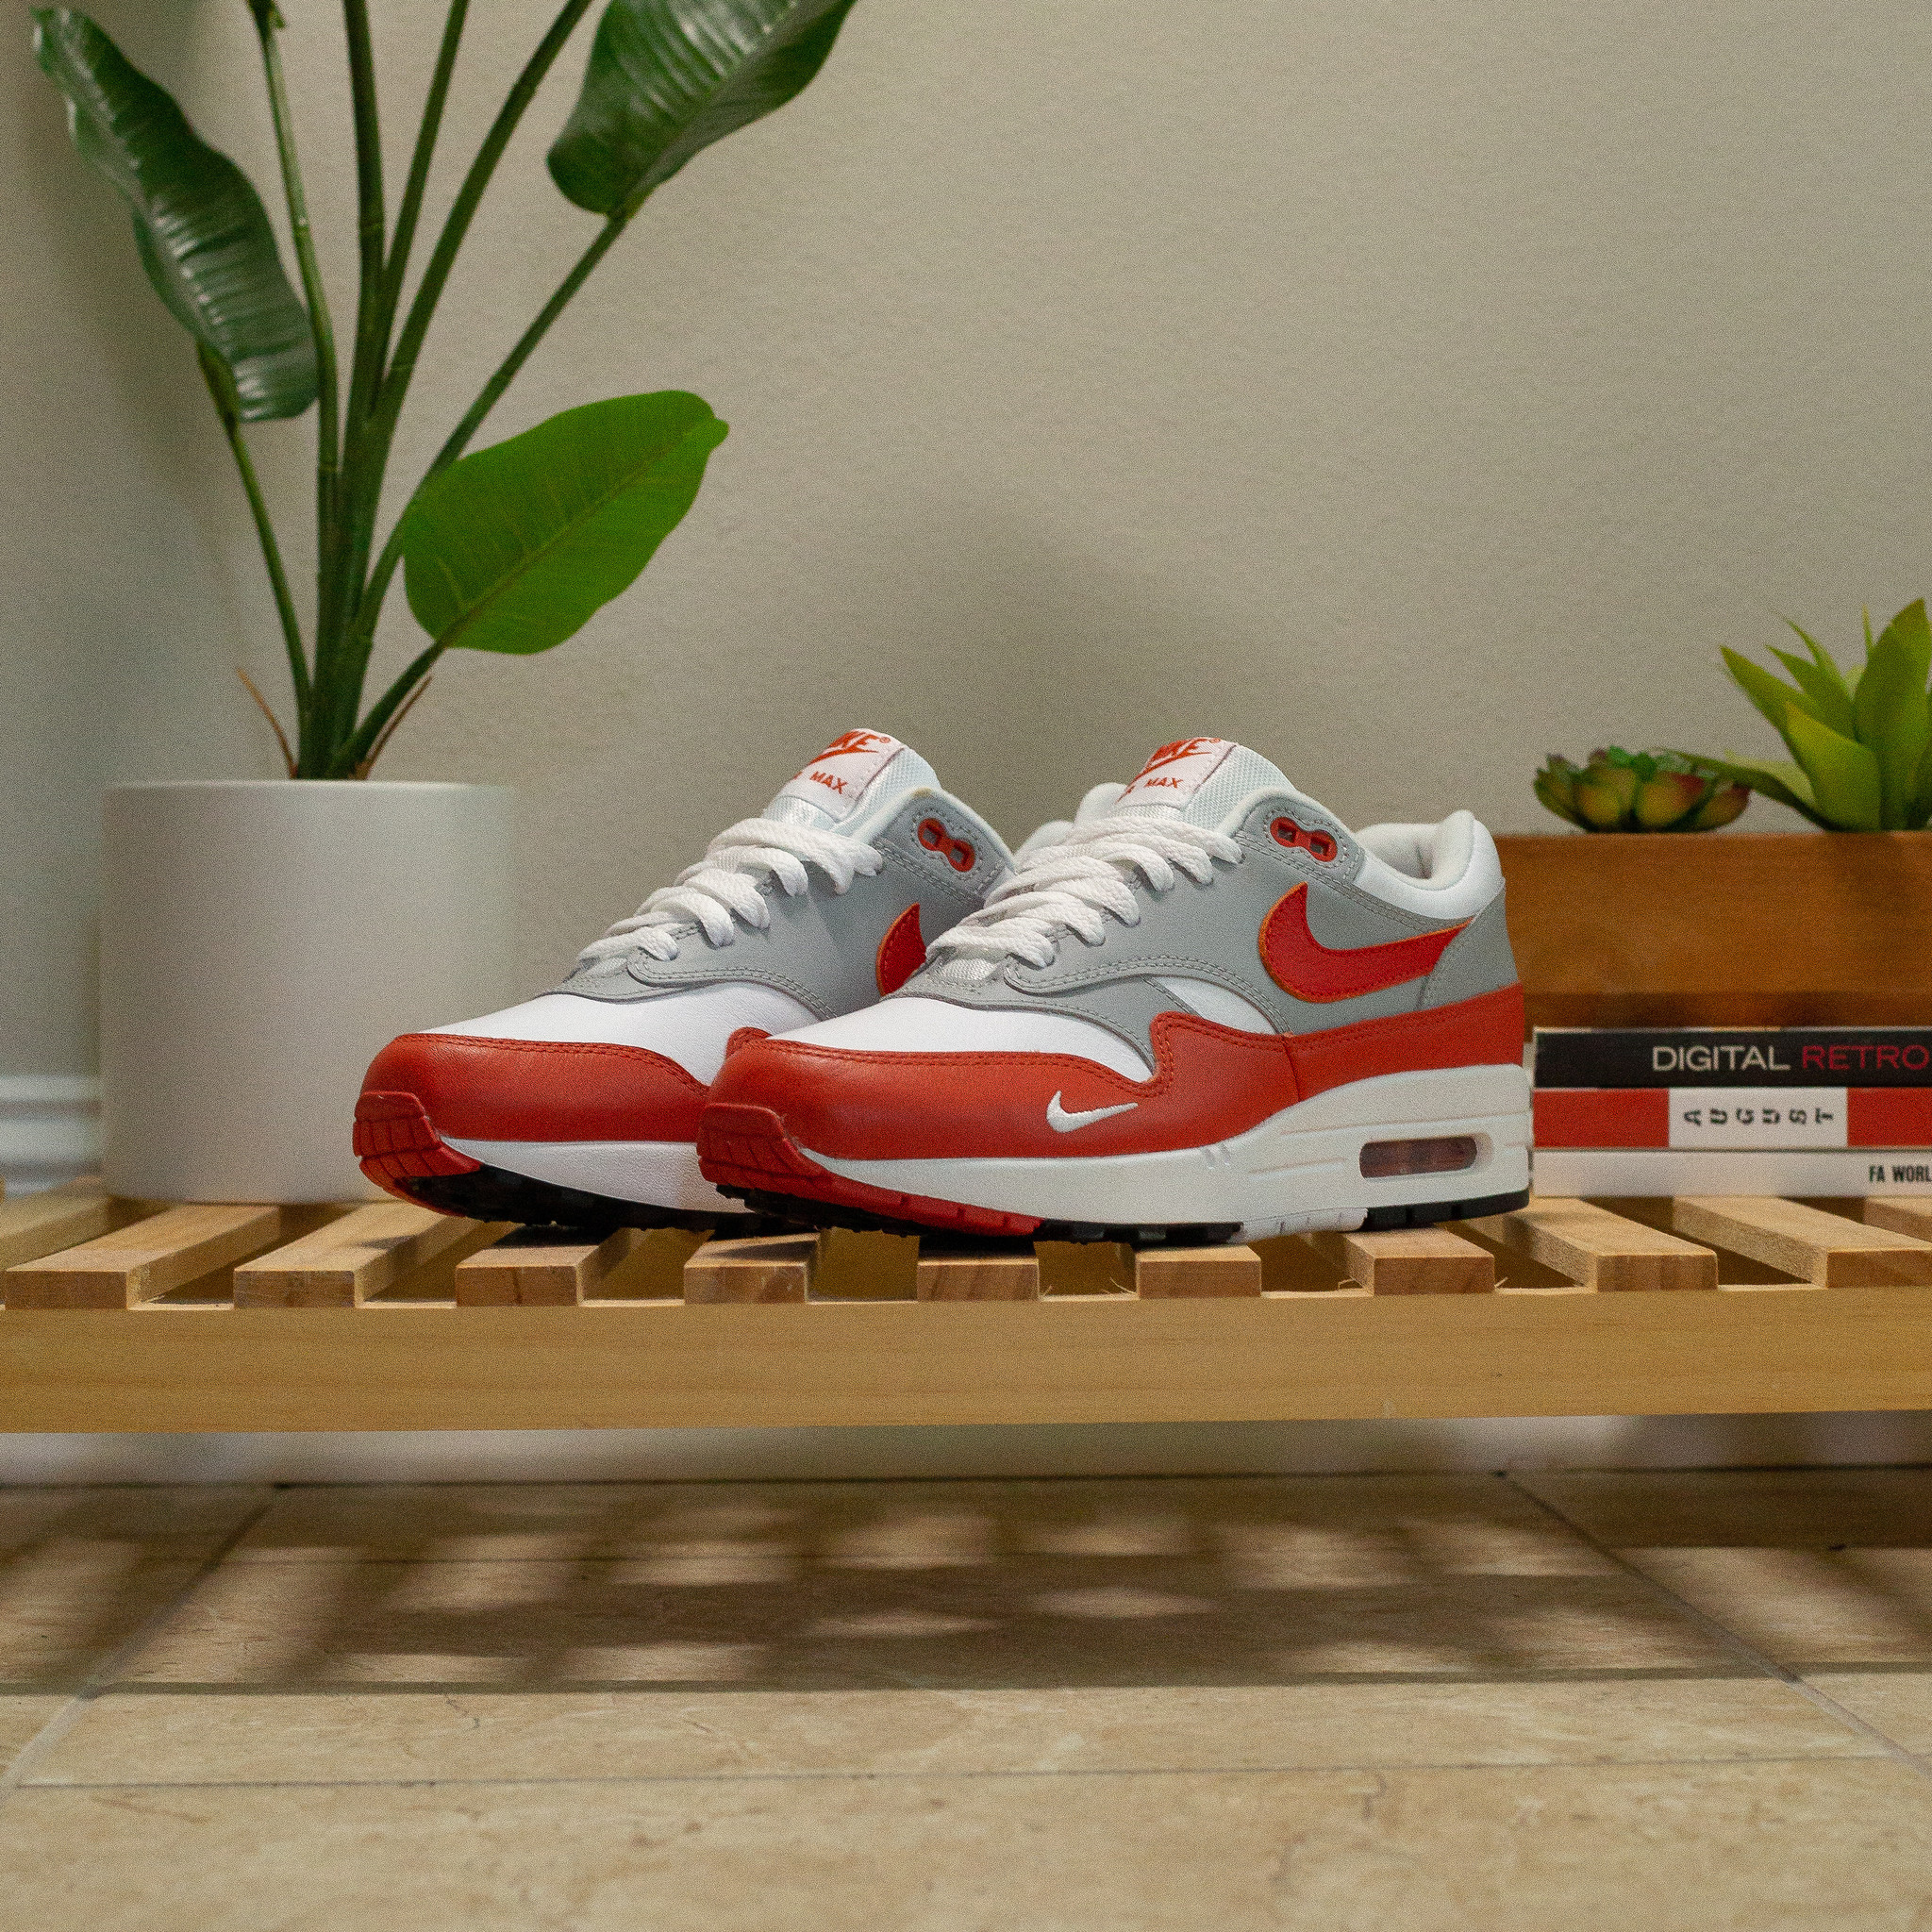 Nike Nike Air Max 1 Lv 8 Martian Sunrise